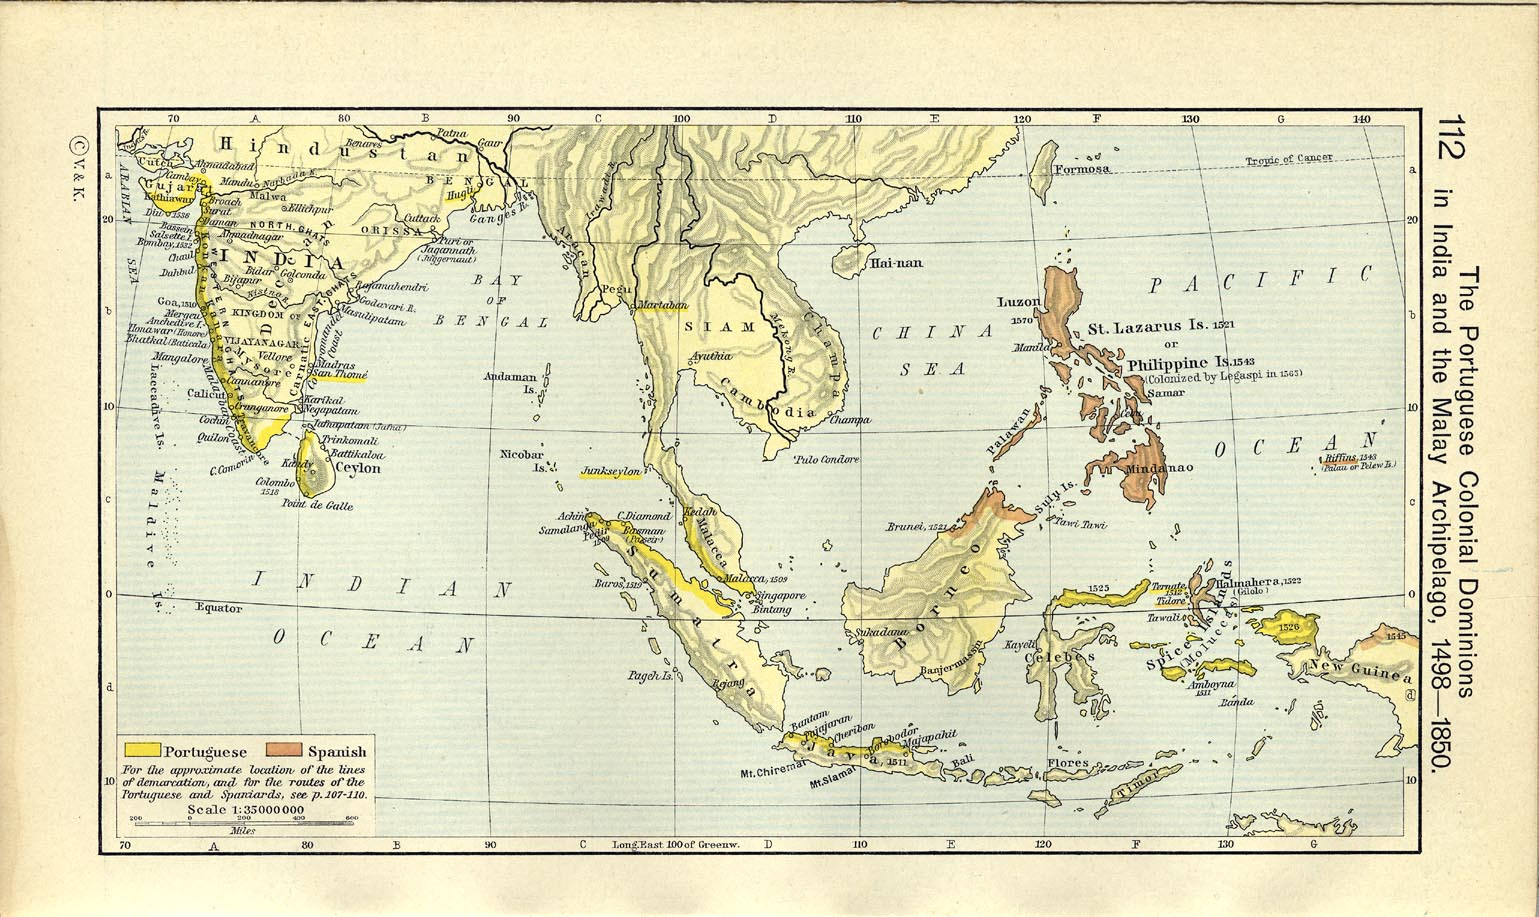 Map of india and the malay archipelago 1498 1850 map of the portuguese colonial dominions in india and the malay archipelago 1498 1850 gumiabroncs